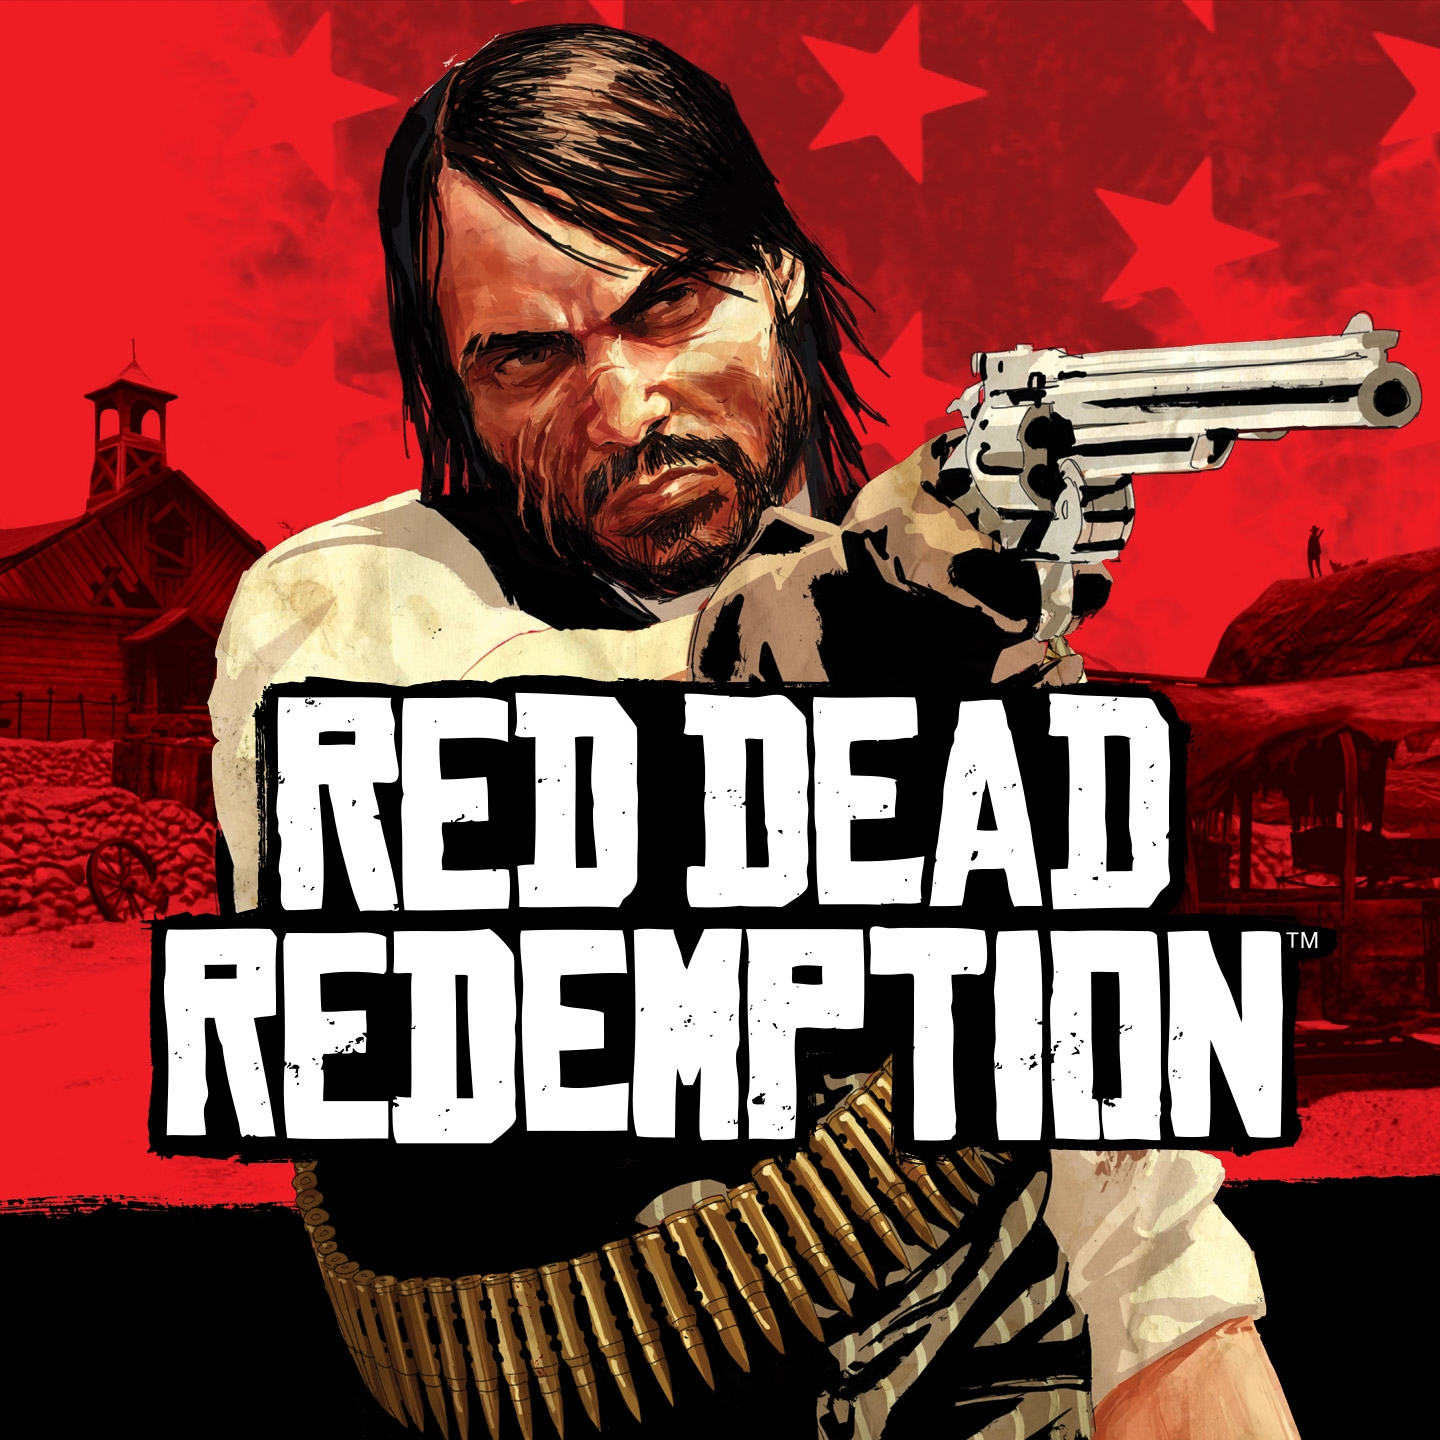 Red Dead Redemption on Xbox One Backward Compatibility